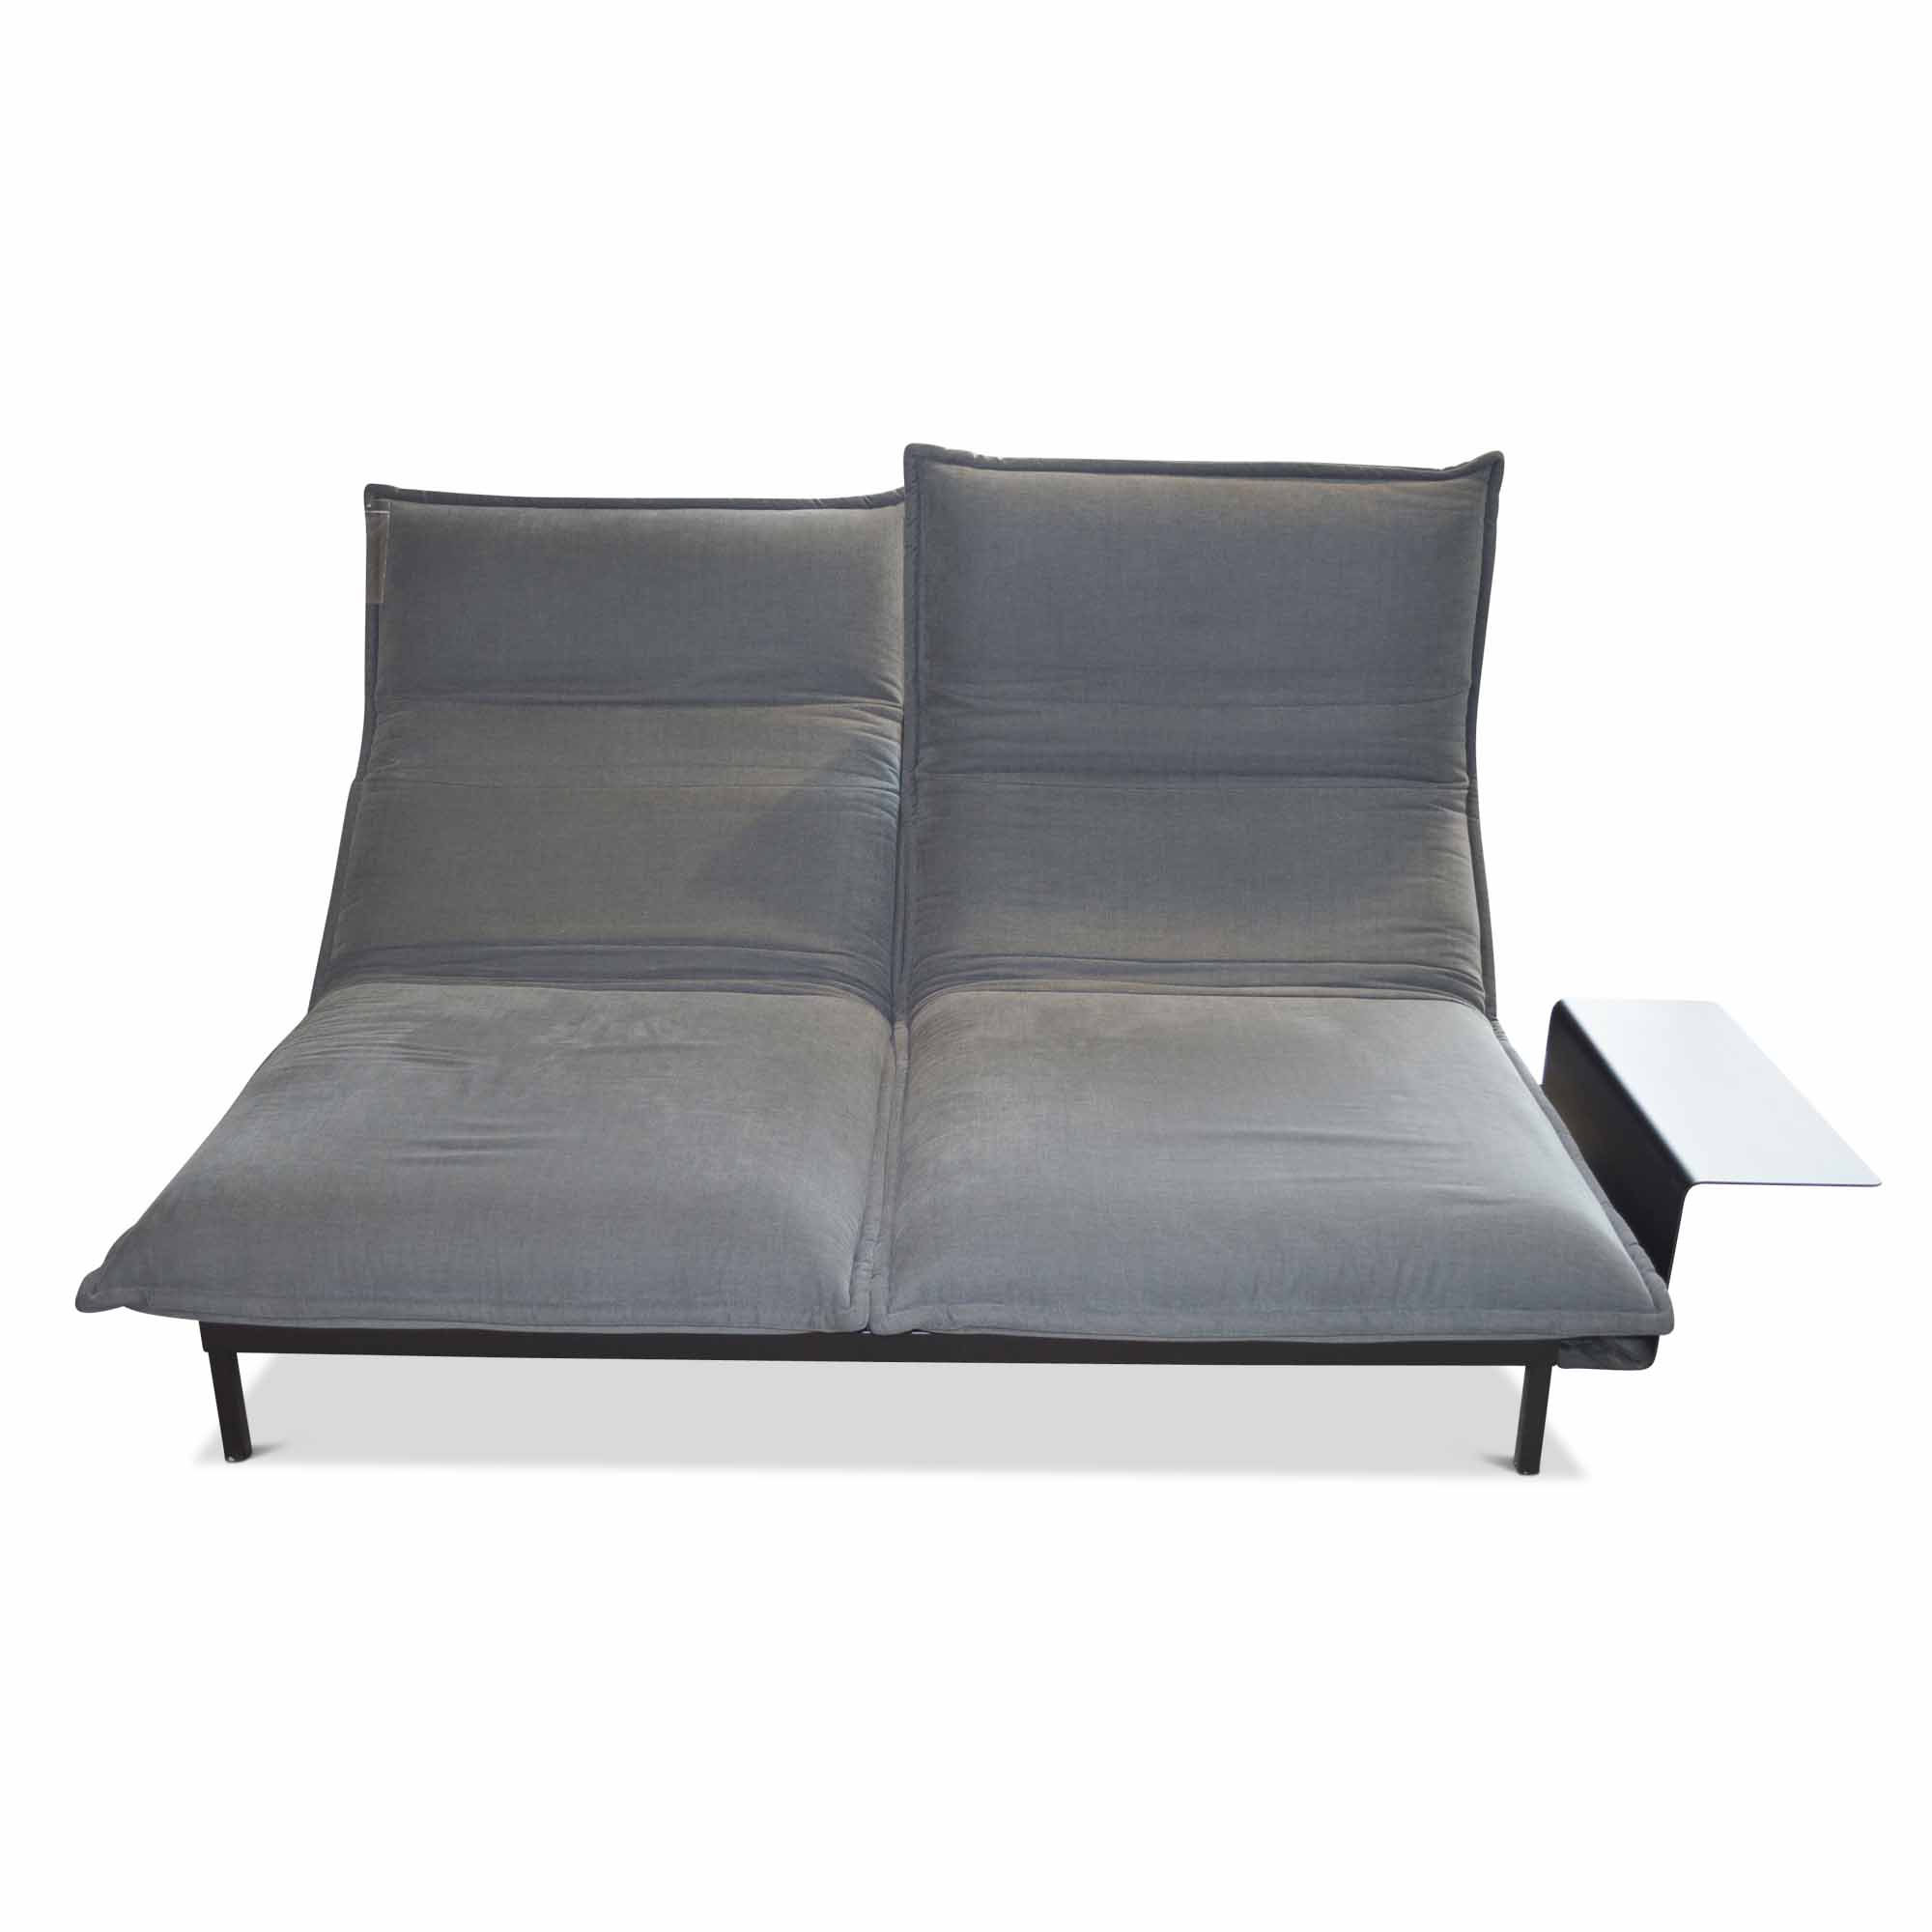 rolf benz designer sofa nova mit ablage stoff grau ebay. Black Bedroom Furniture Sets. Home Design Ideas